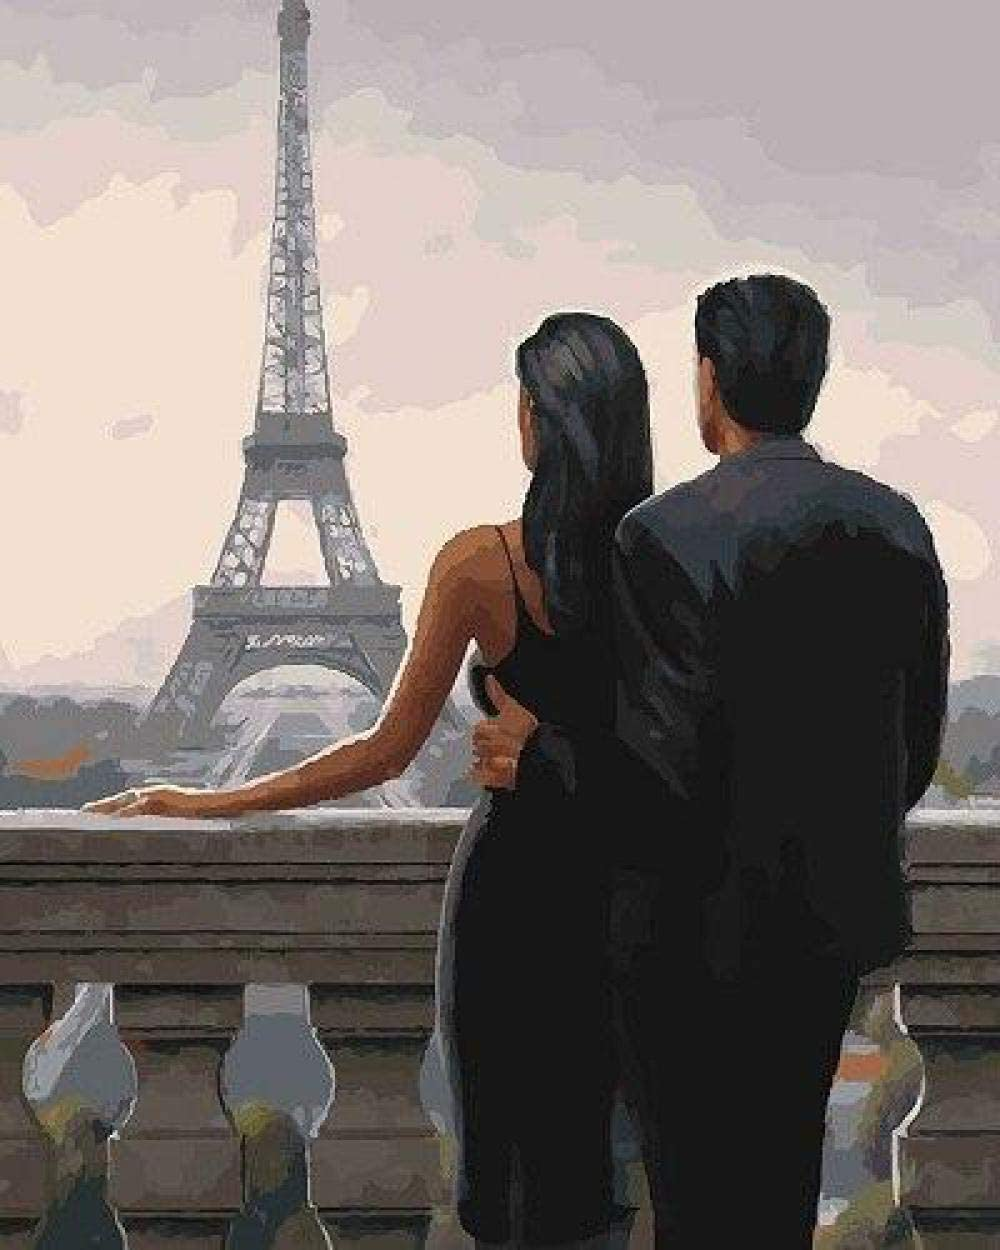 Painting by Numbers for Adults Tower 67% OFF of fixed price DIY Lovers Max 77% OFF Paint Eiffel